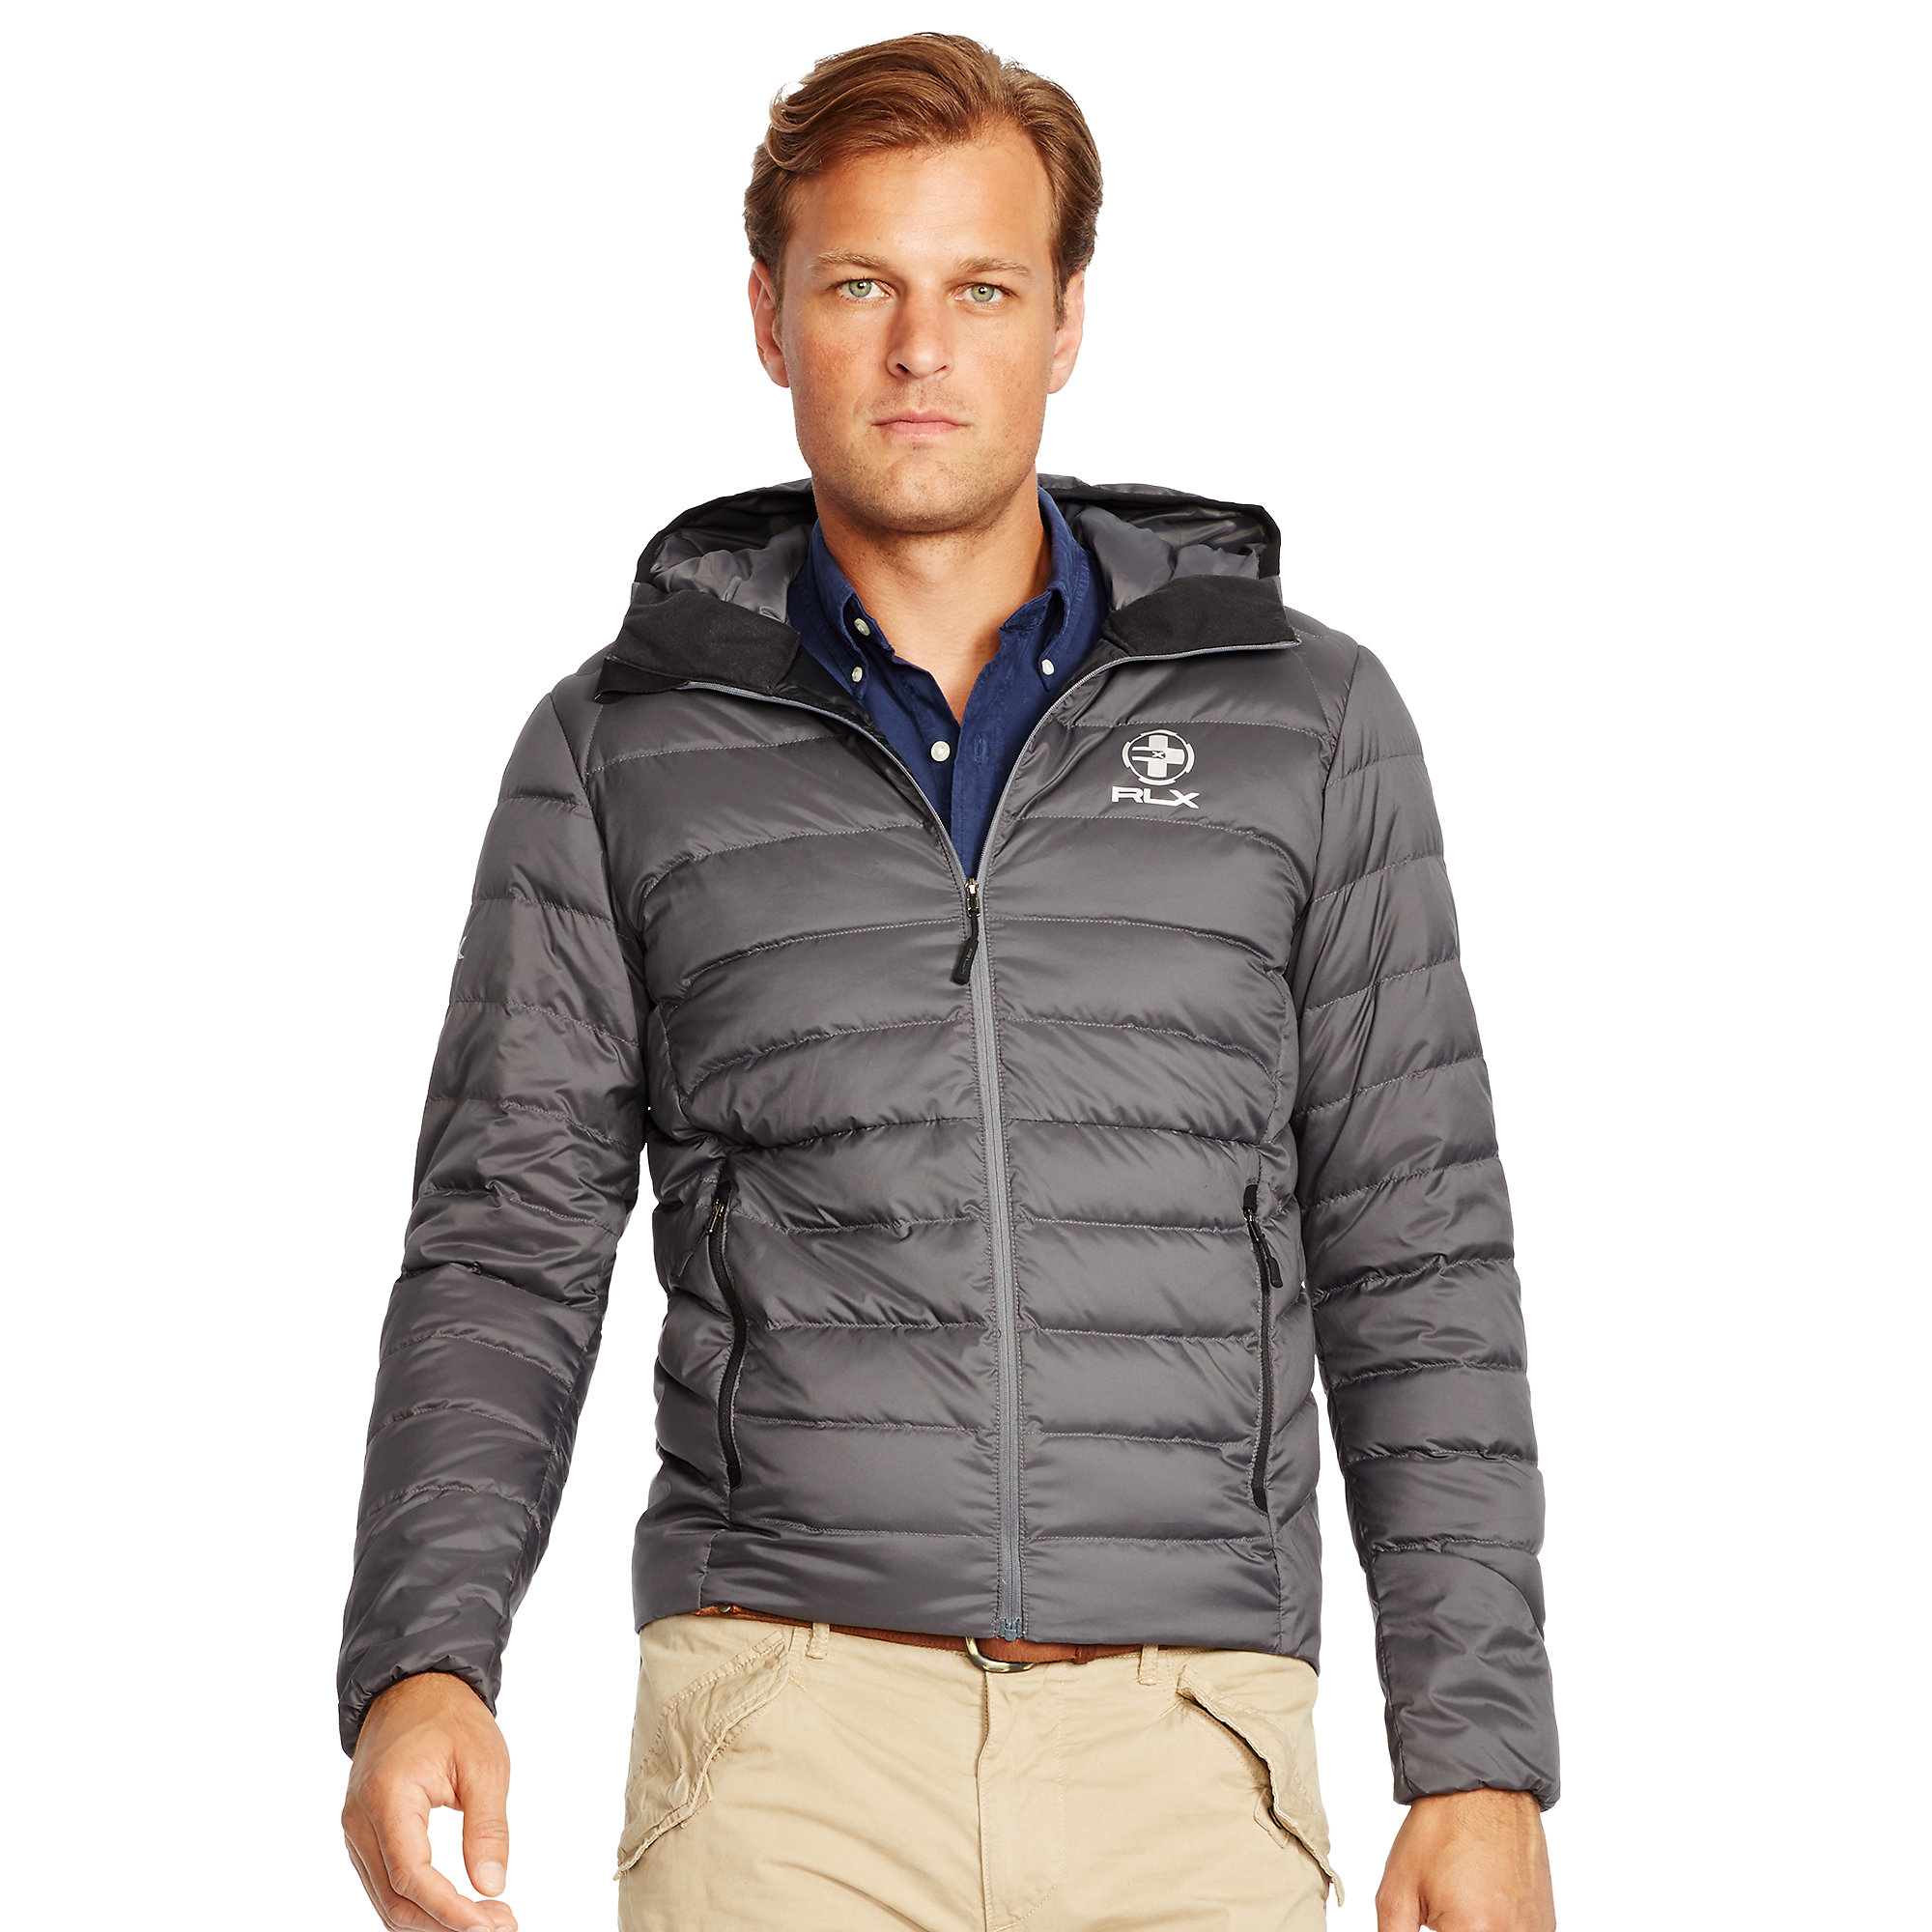 573a82038daf0 Pink Pony Quilted Down Jacket in Gray for Men - Lyst